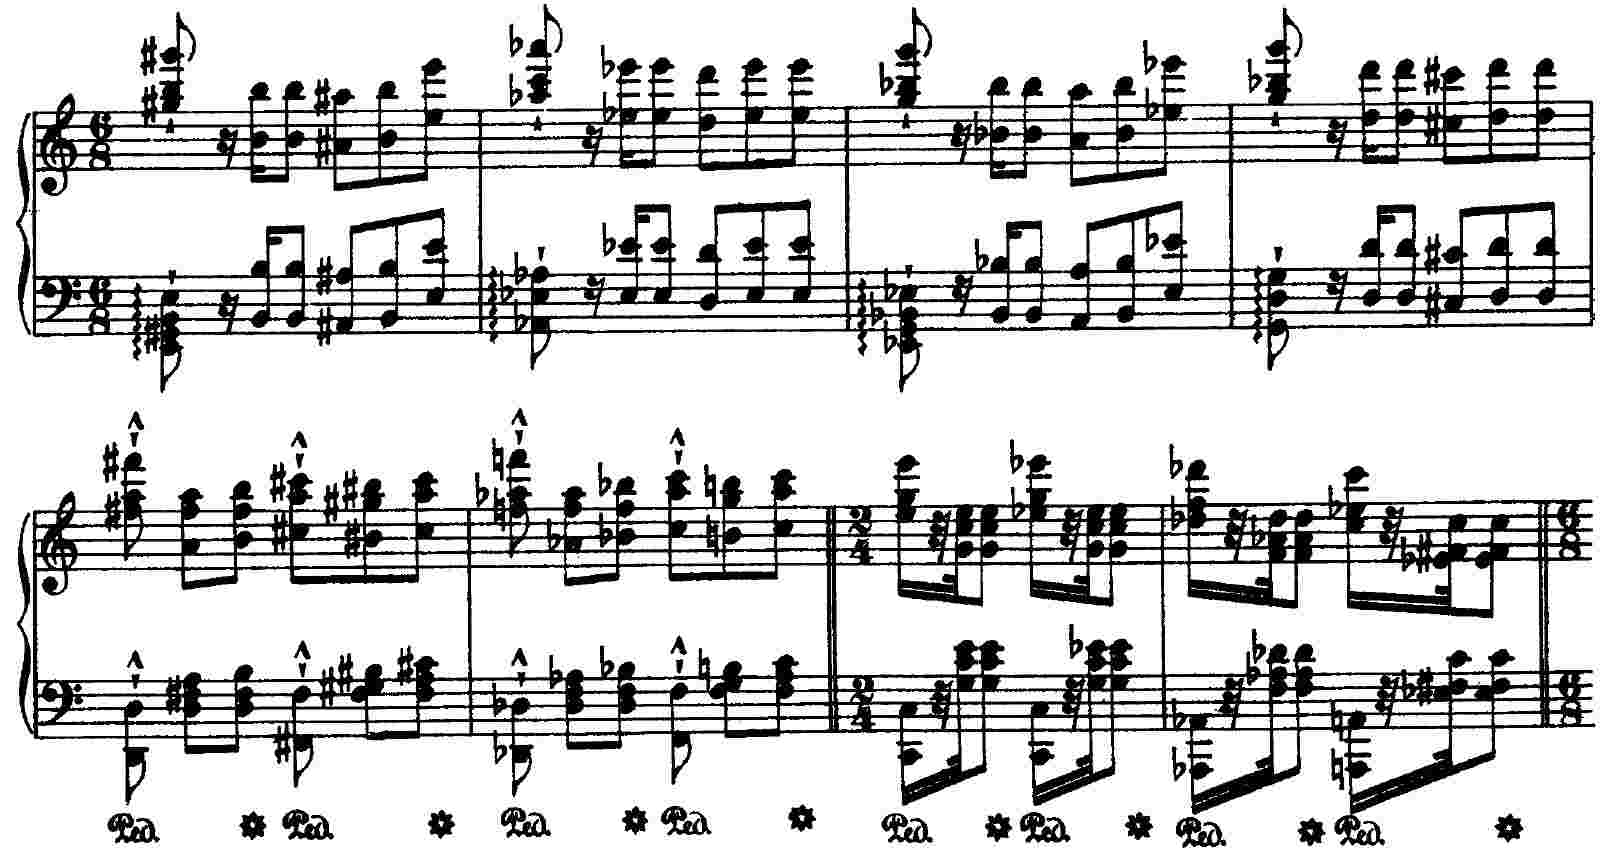 Liszt, Wilde Jagd, mm. 178 - 185